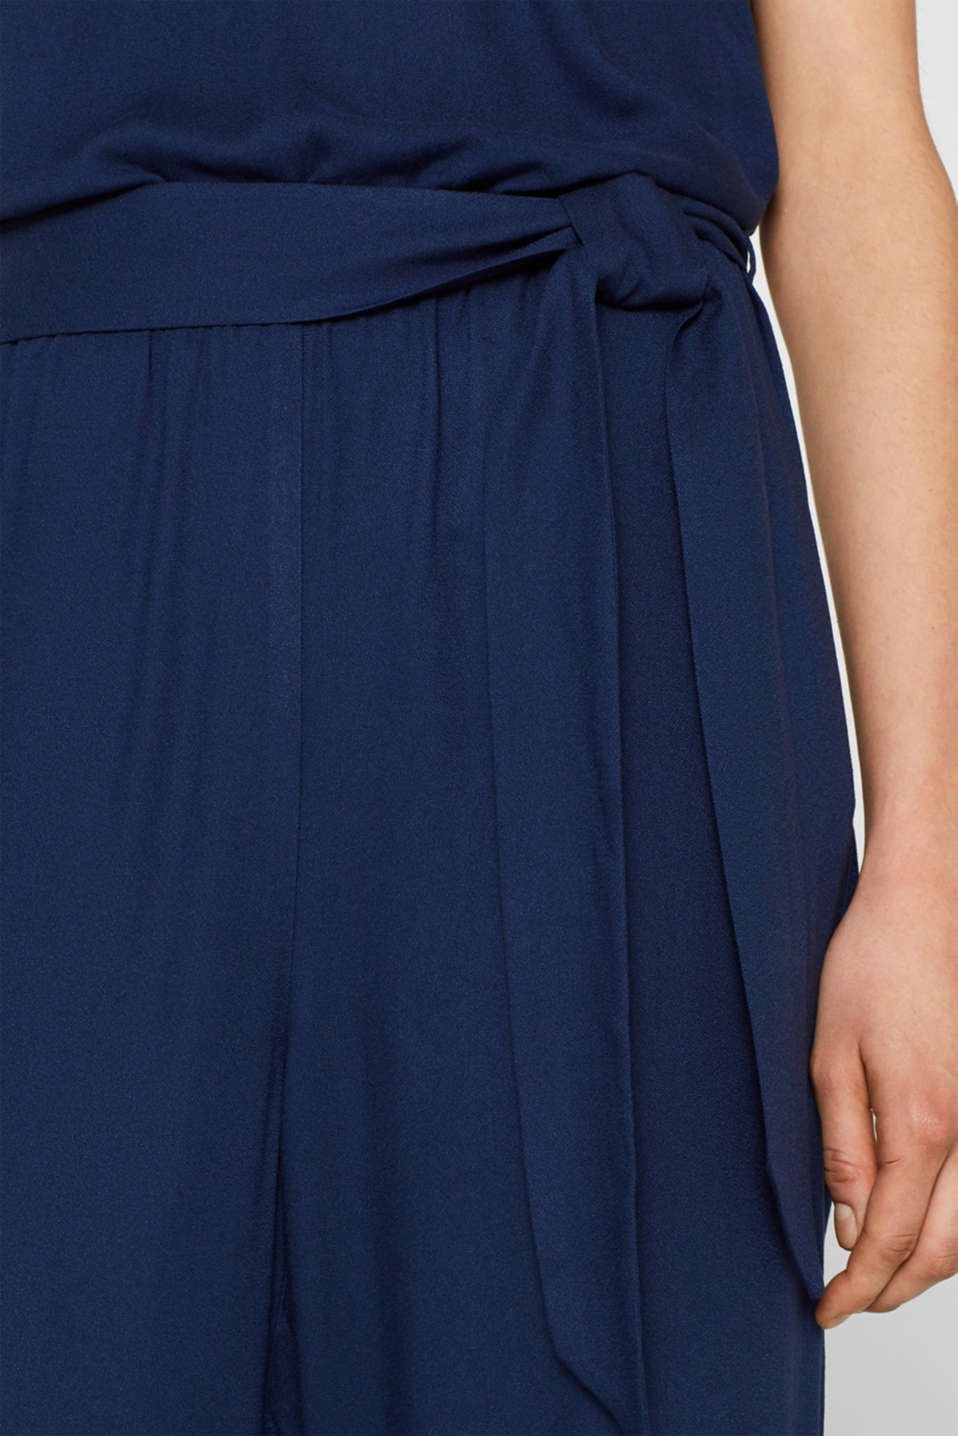 Jumpsuit with a wide leg and rear cut-out, NAVY, detail image number 5